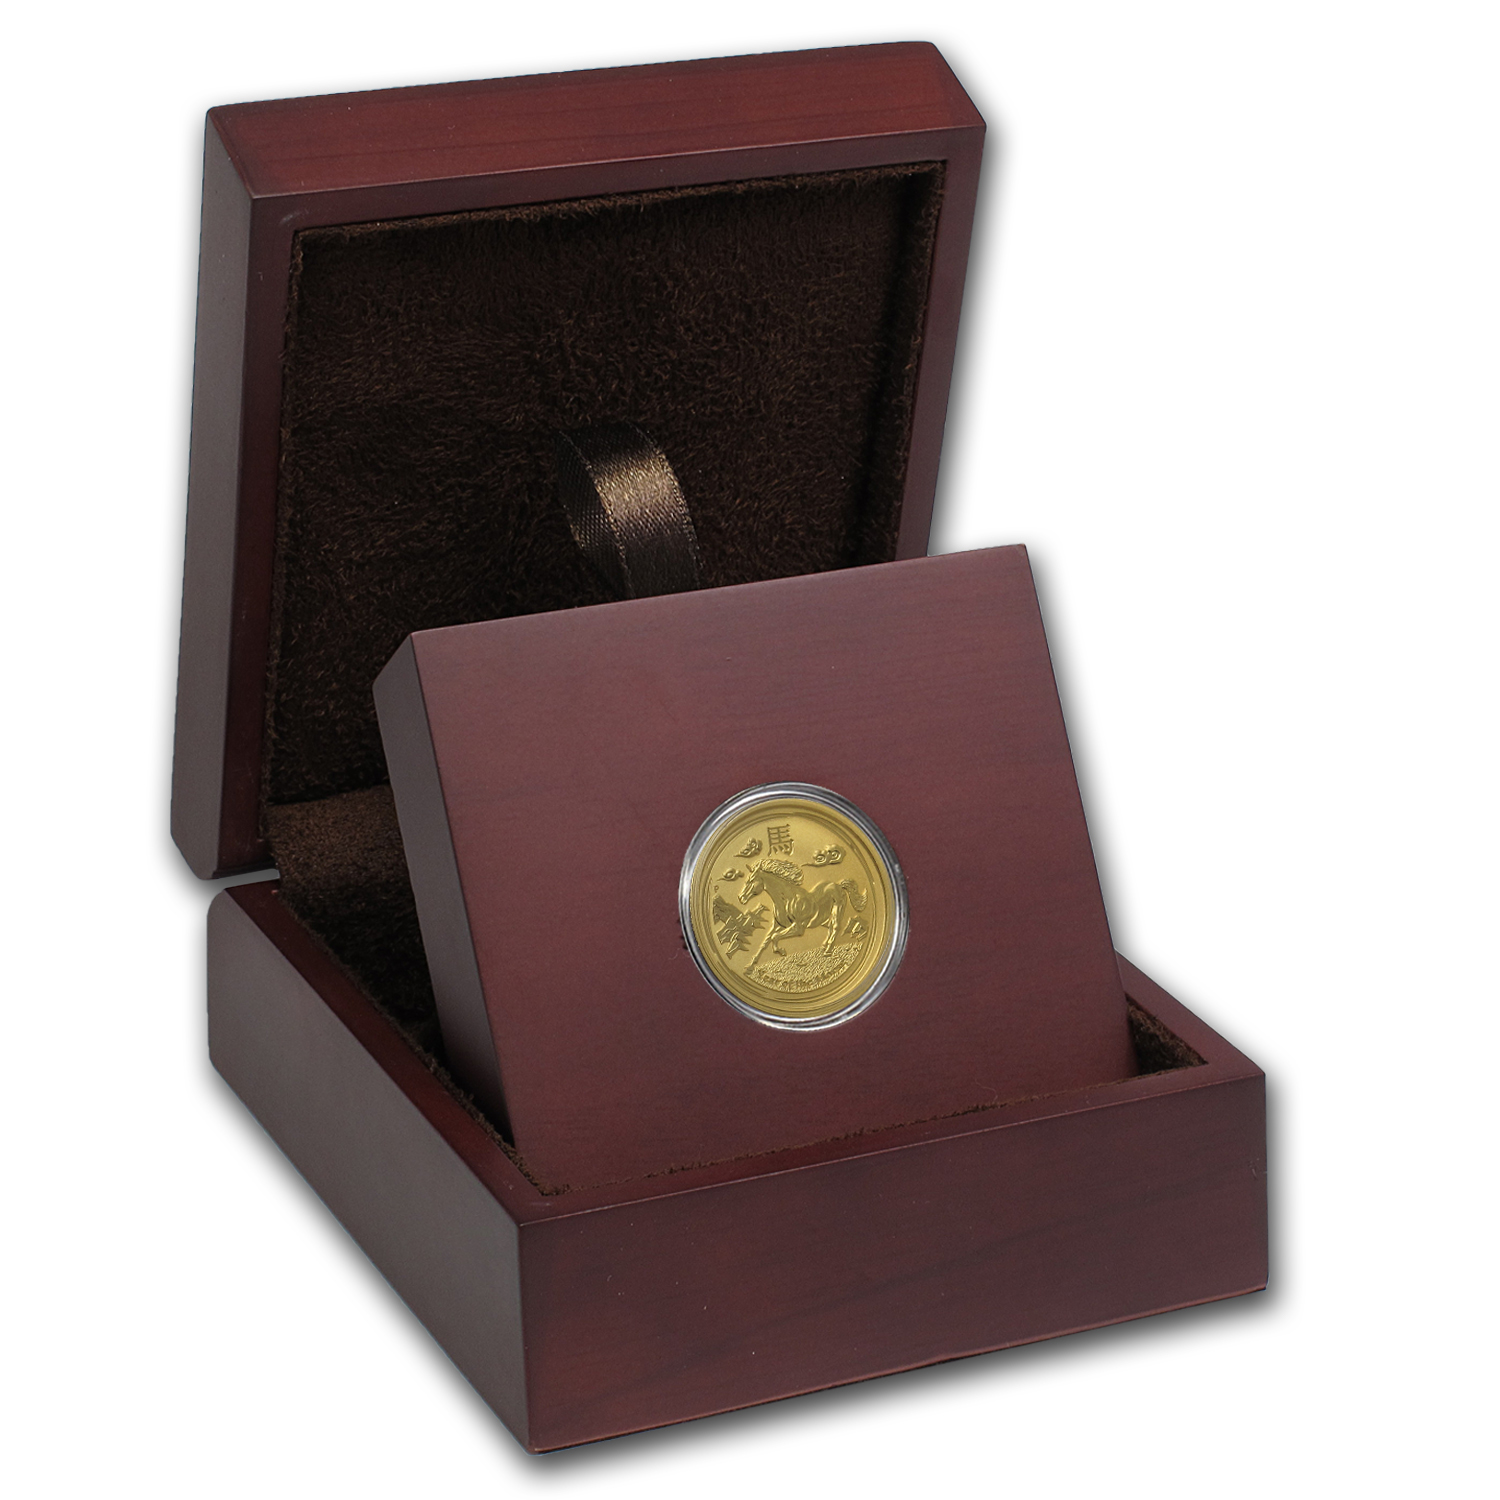 APMEX Wood Gift Box - 1/4 oz Perth Mint Gold Coin Series 2